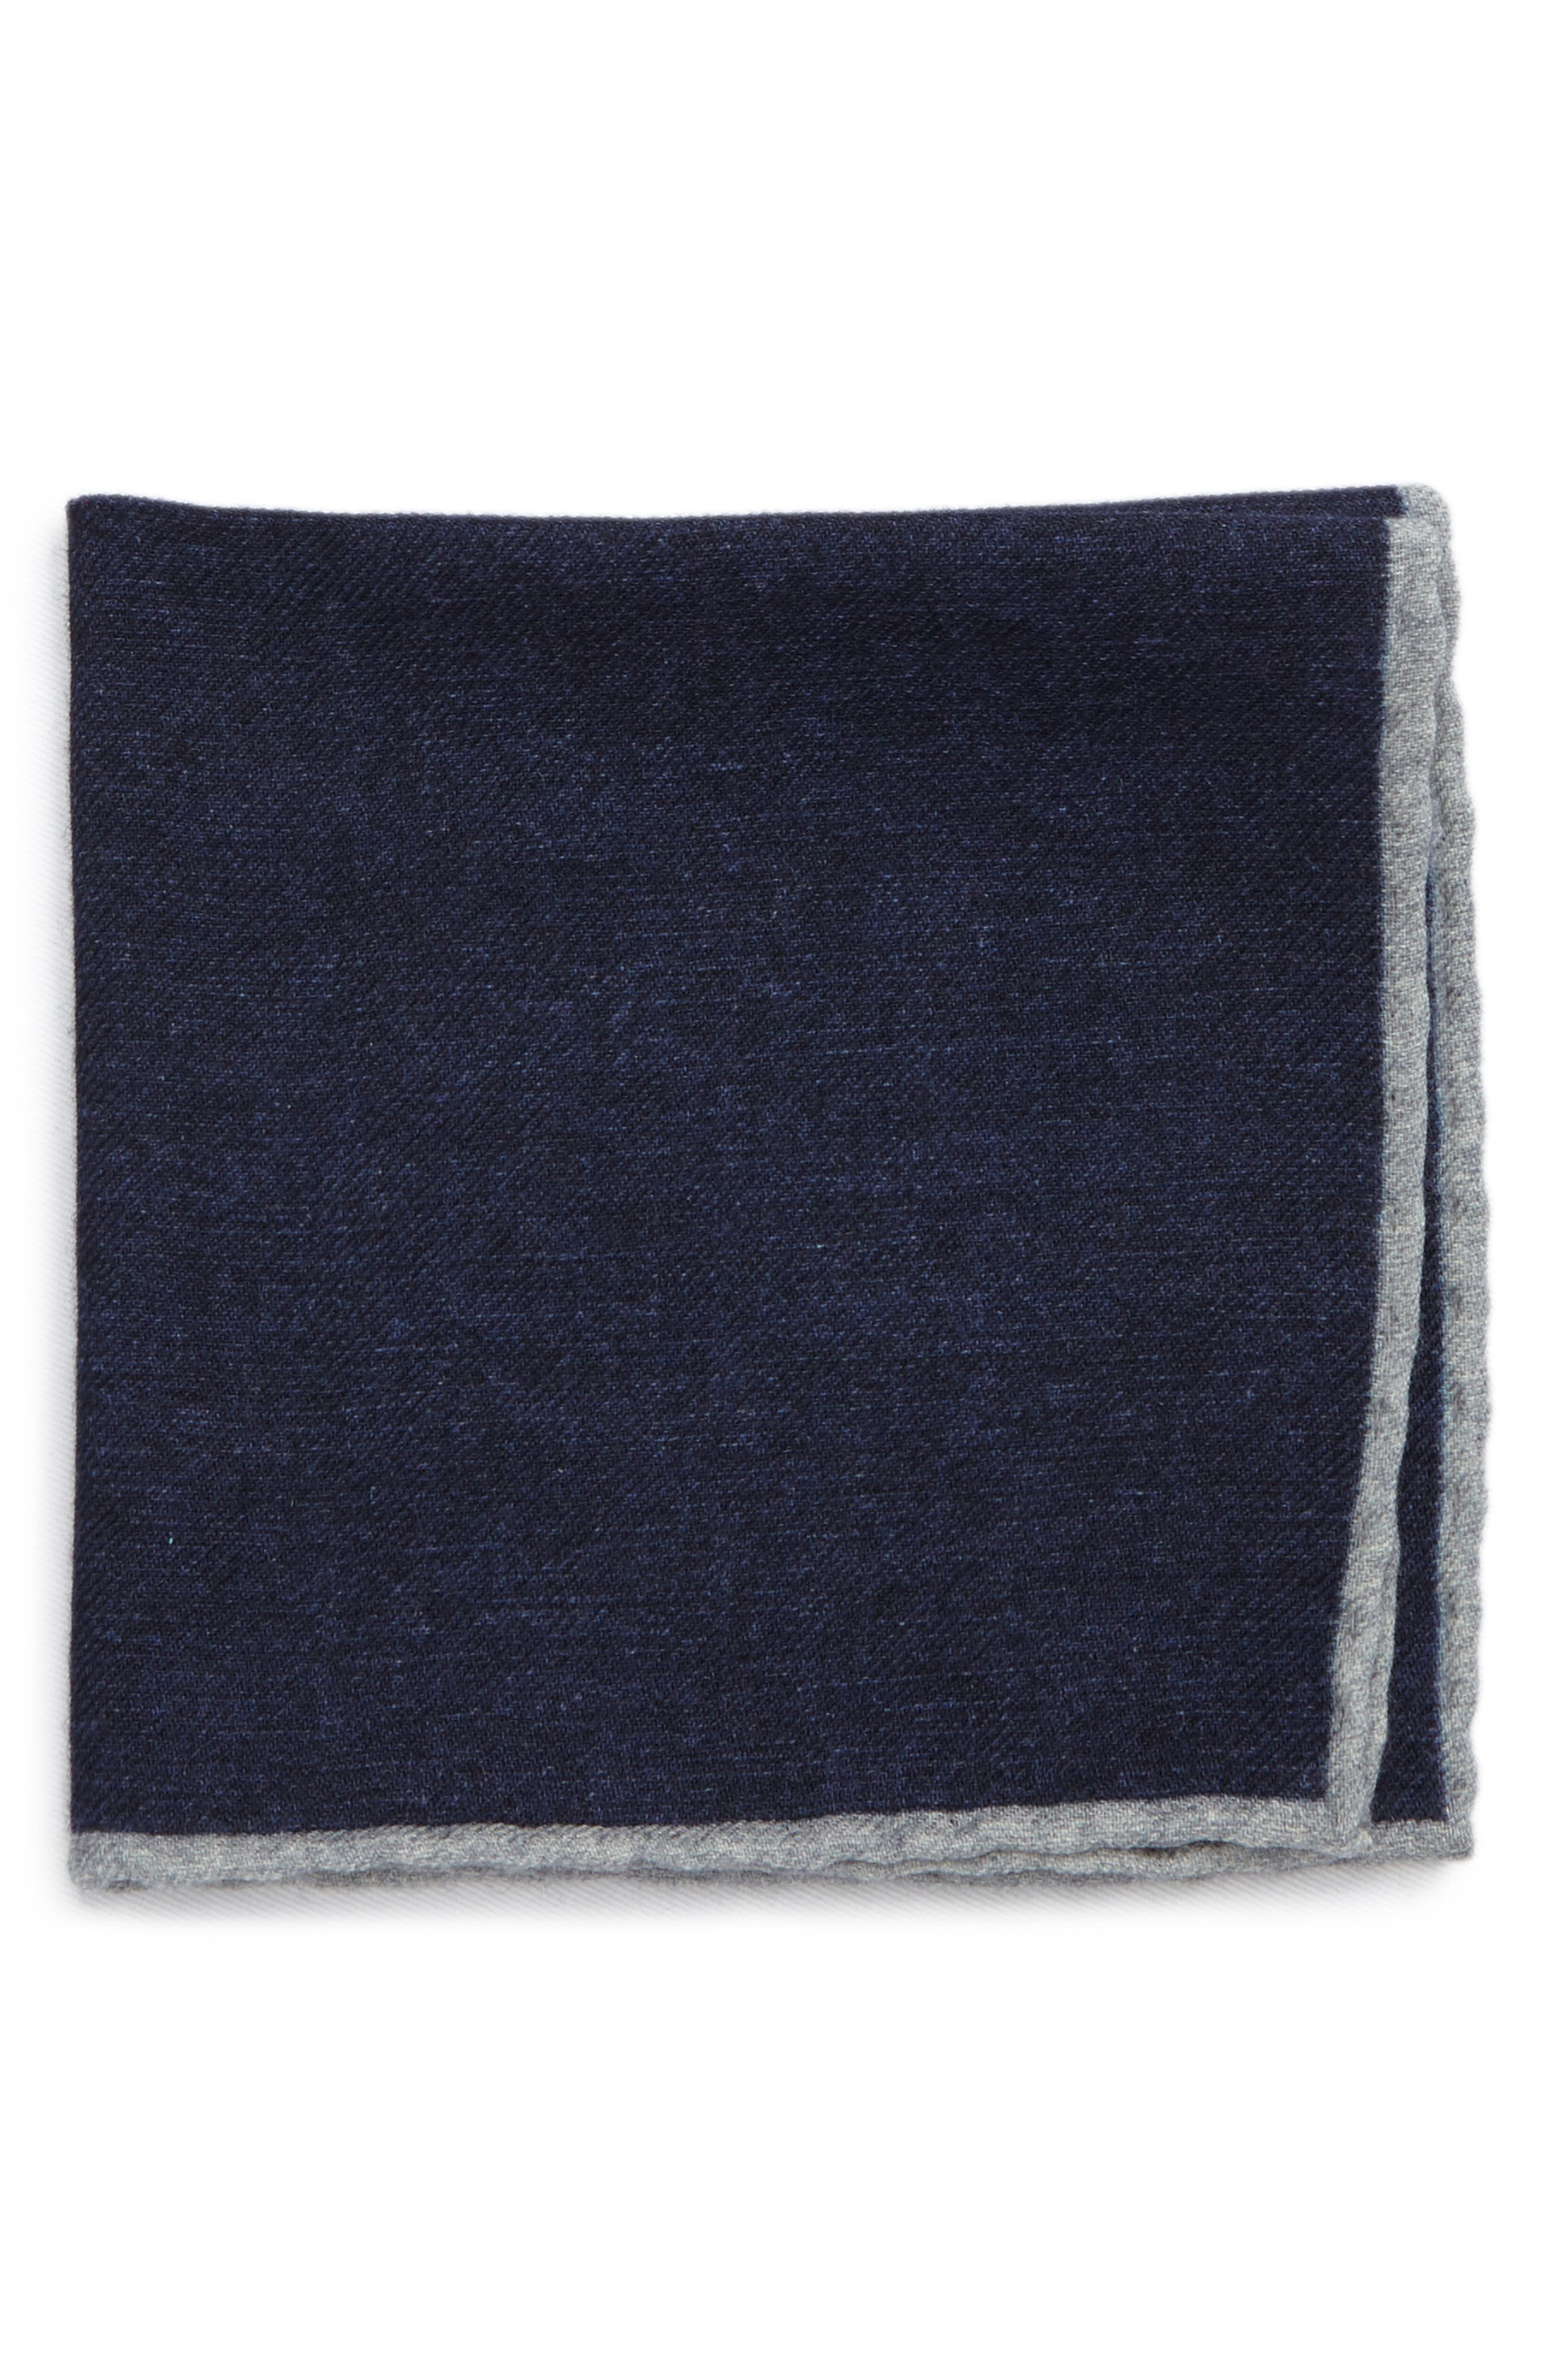 Flannel Wool Pocket Square,                         Main,                         color, Blue